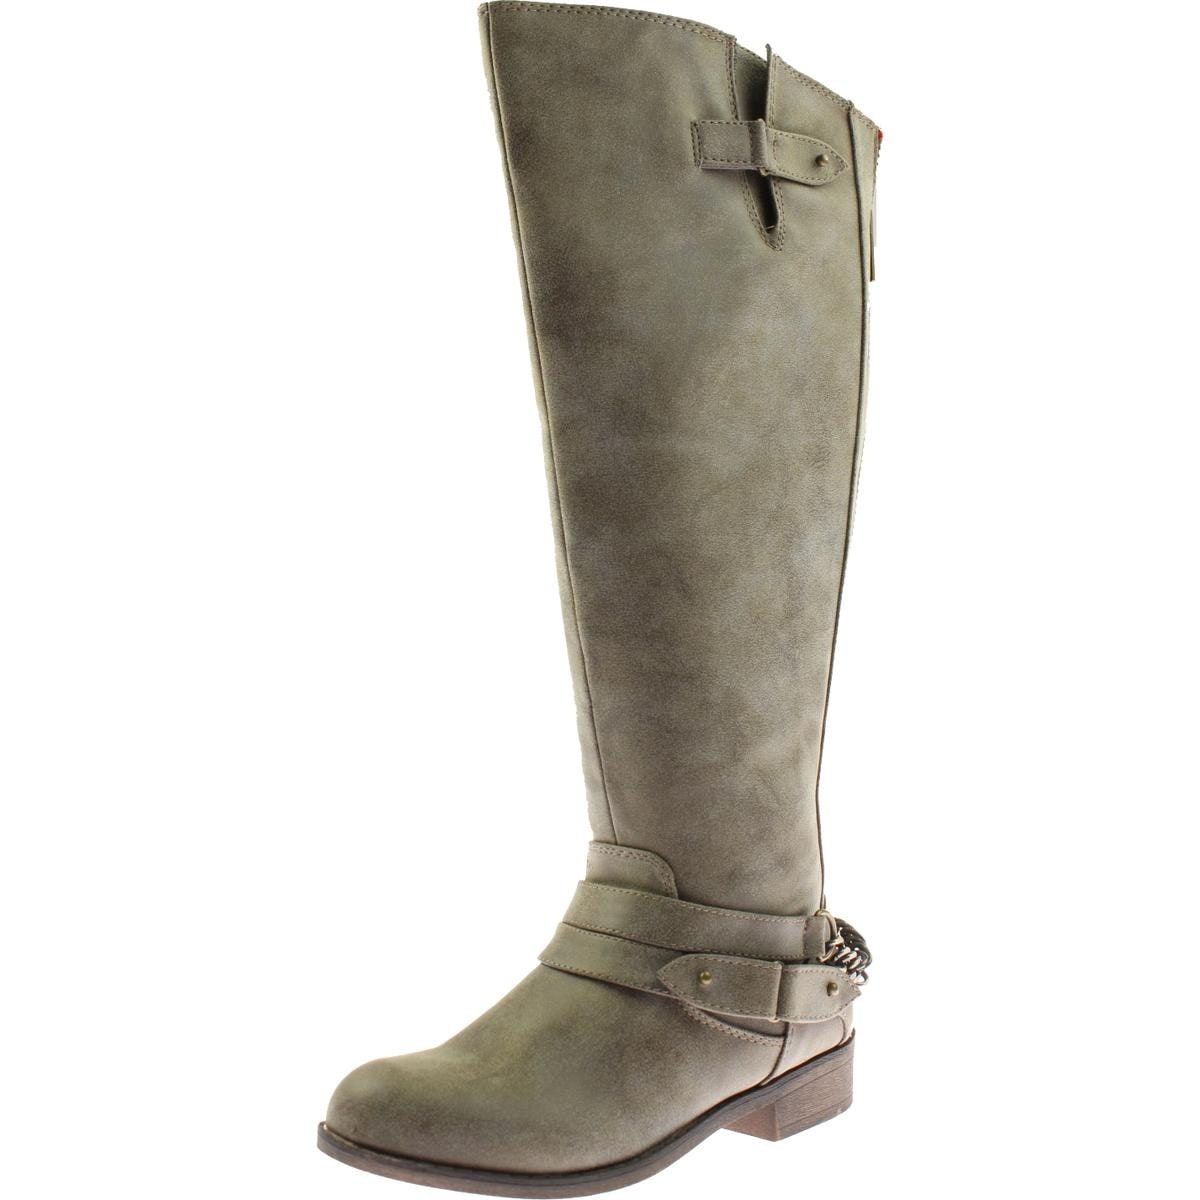 f0205397c87 Shop Madden Girl Womens Canyon Riding Boots Faux Leather Wide Calf - Free  Shipping On Orders Over  45 - Overstock - 13936639